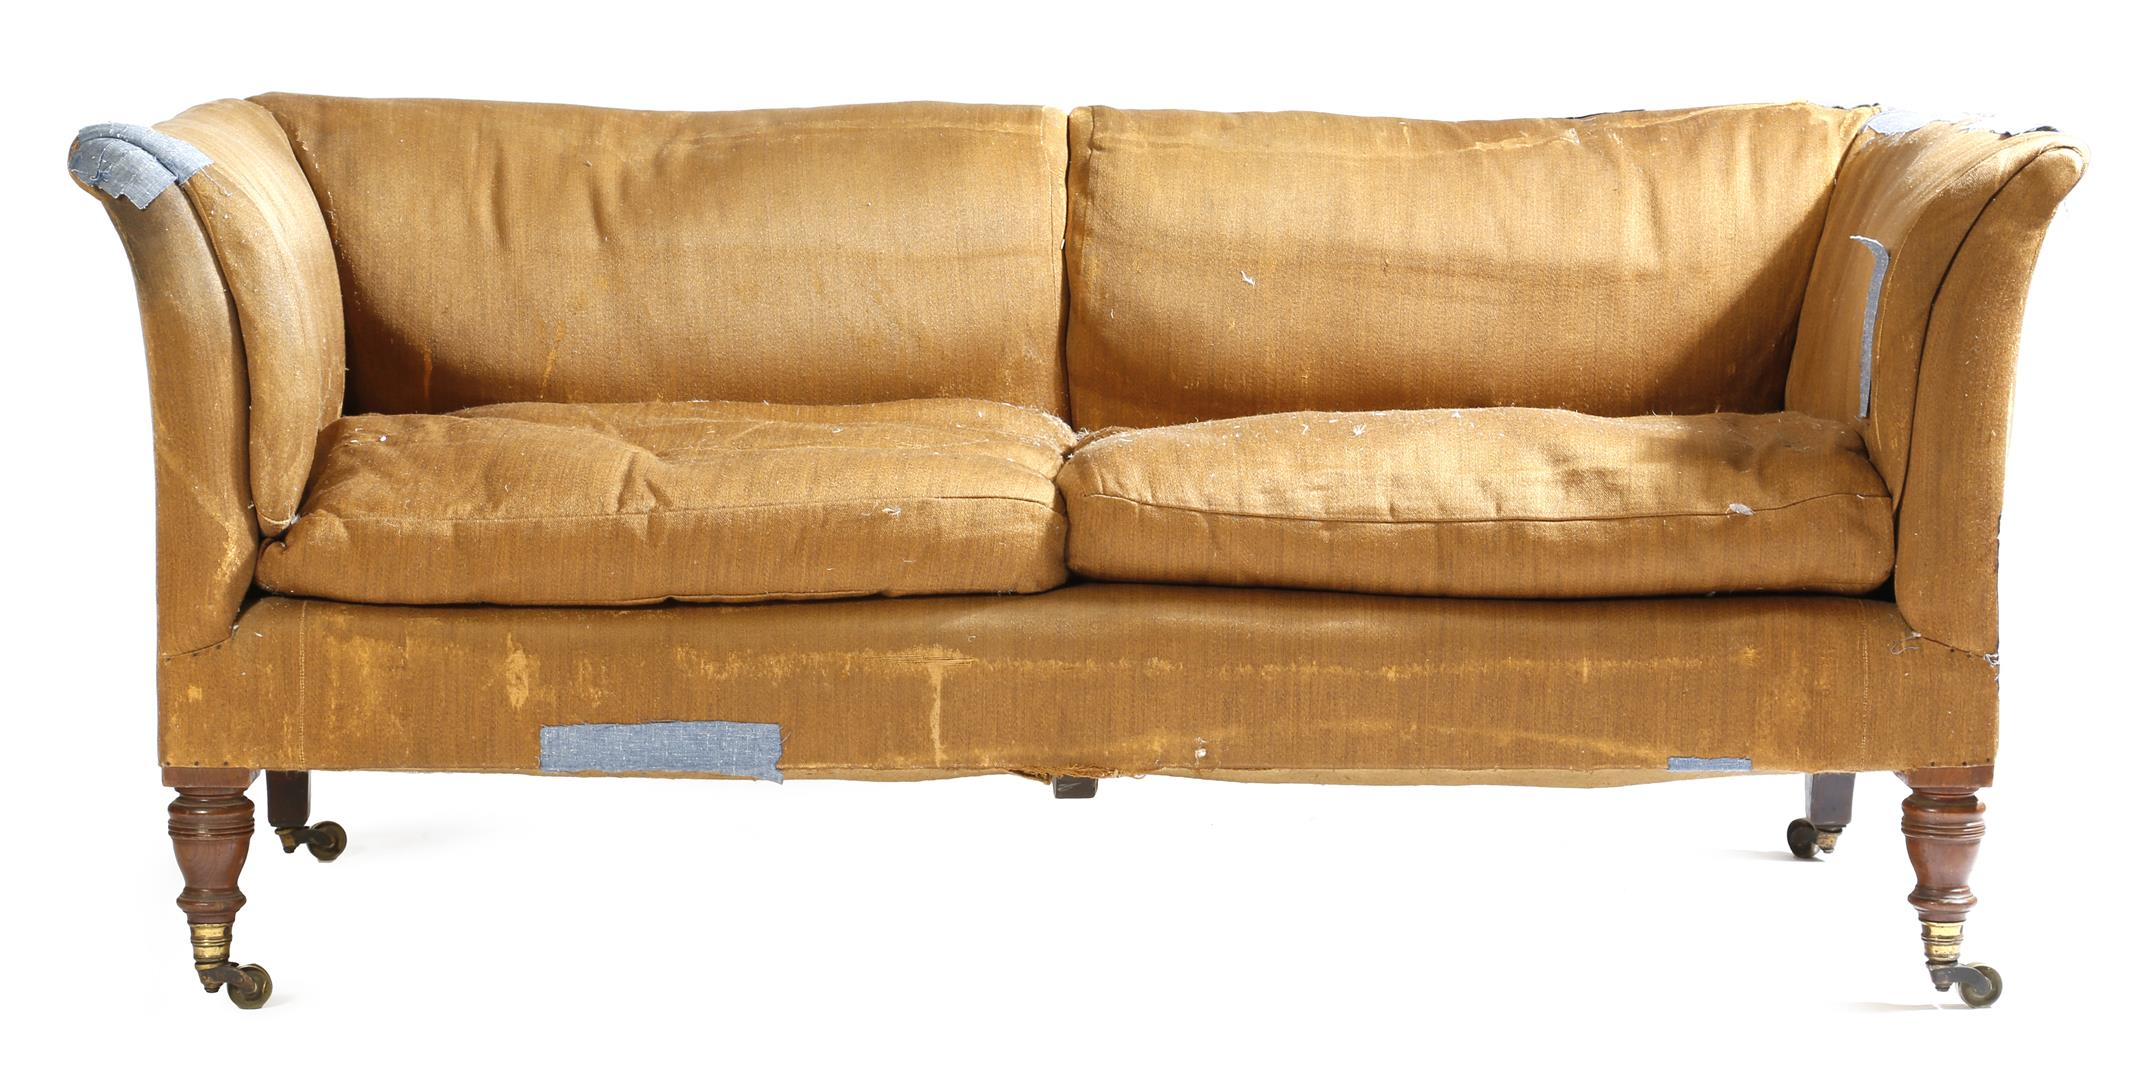 Lot 690 - A late Victorian walnut two seater sofa by Howard & Sons Ltd., with scroll arms and two cushions, on